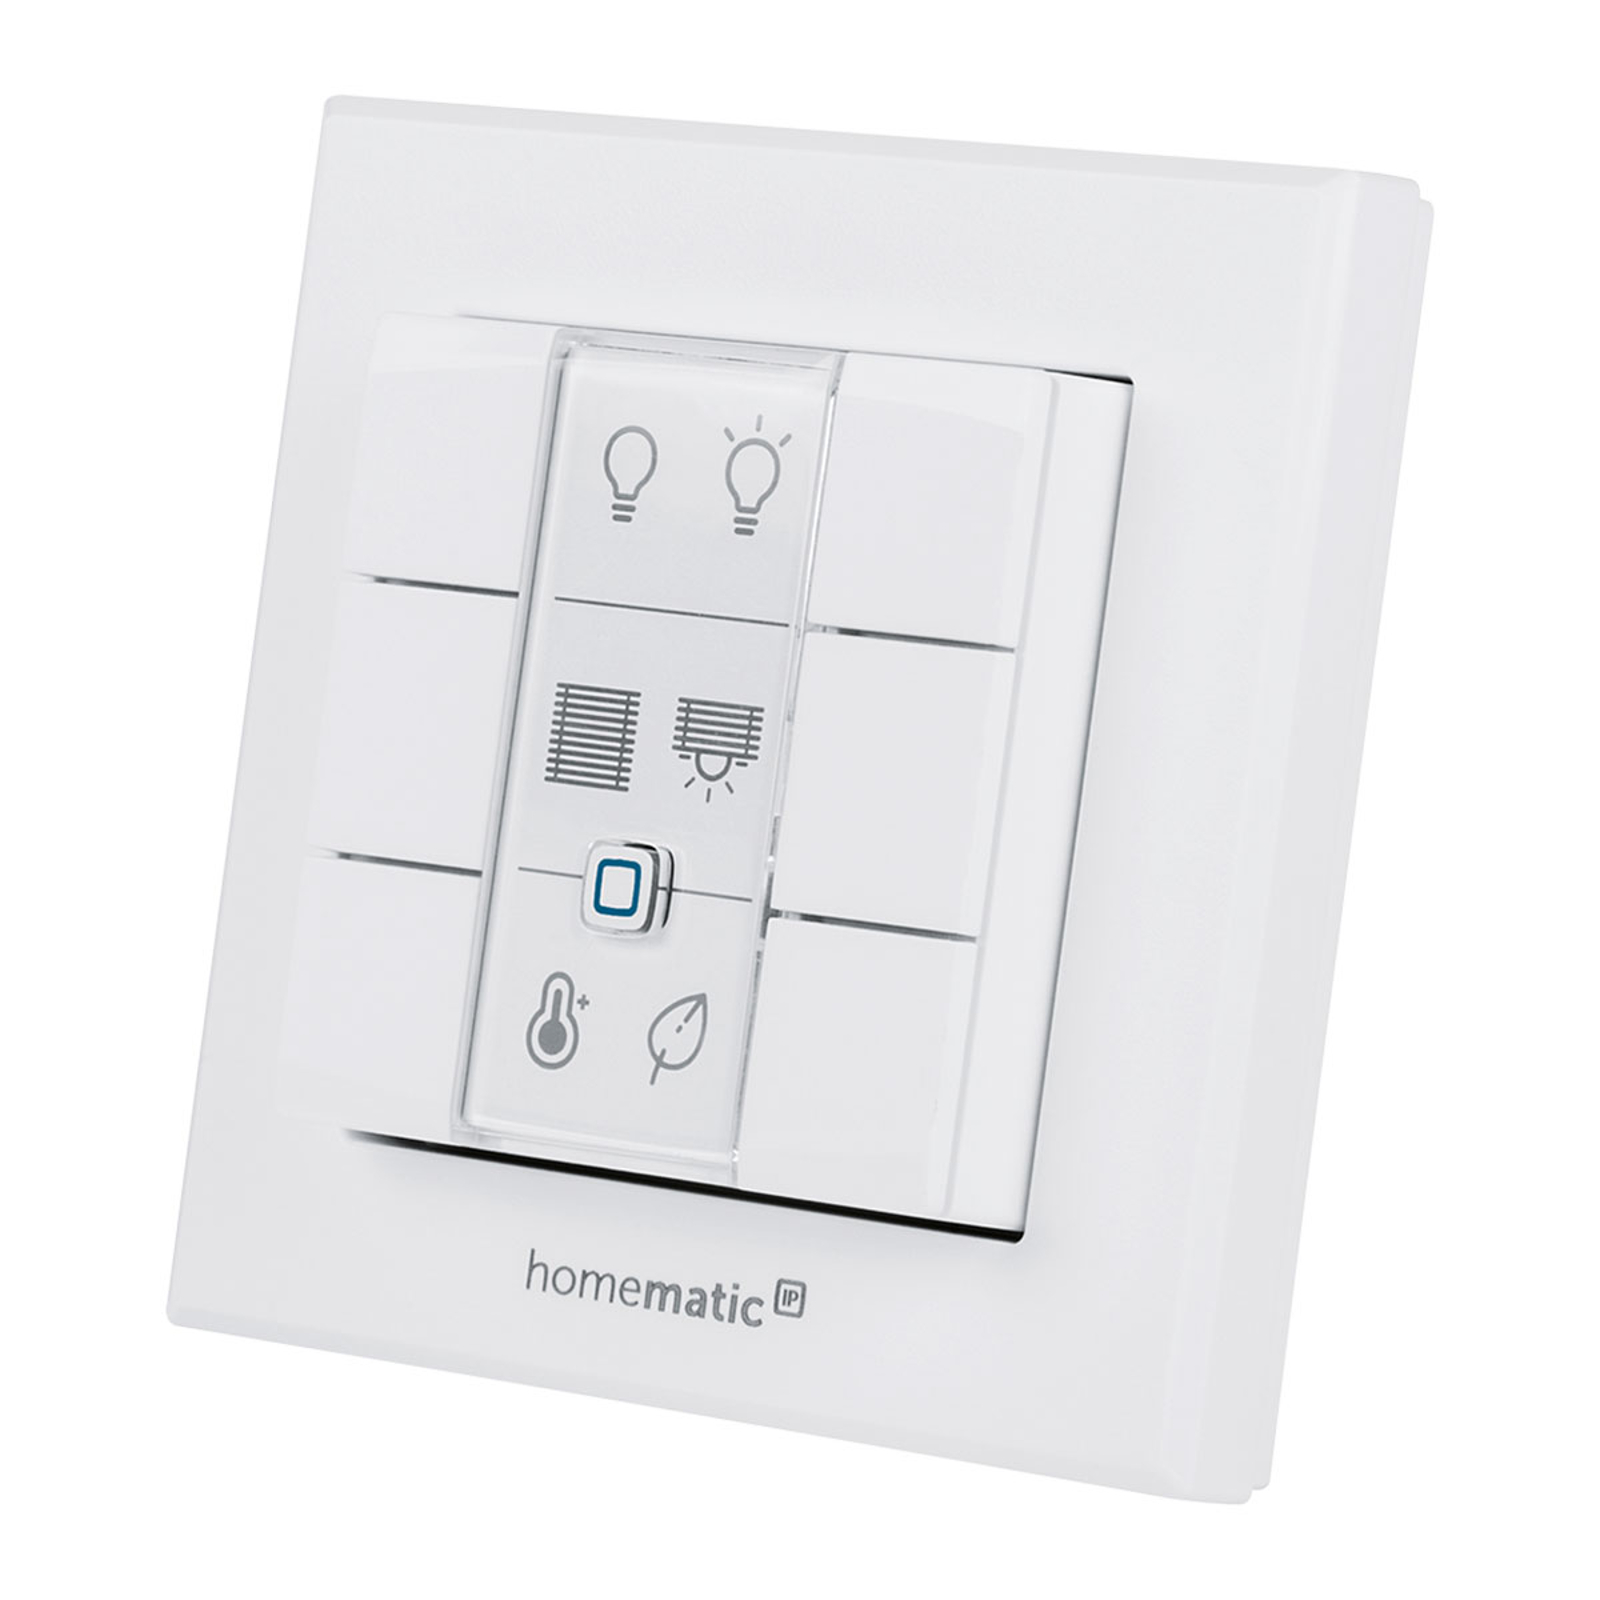 Homematic IP Wandtaster, 6-fach